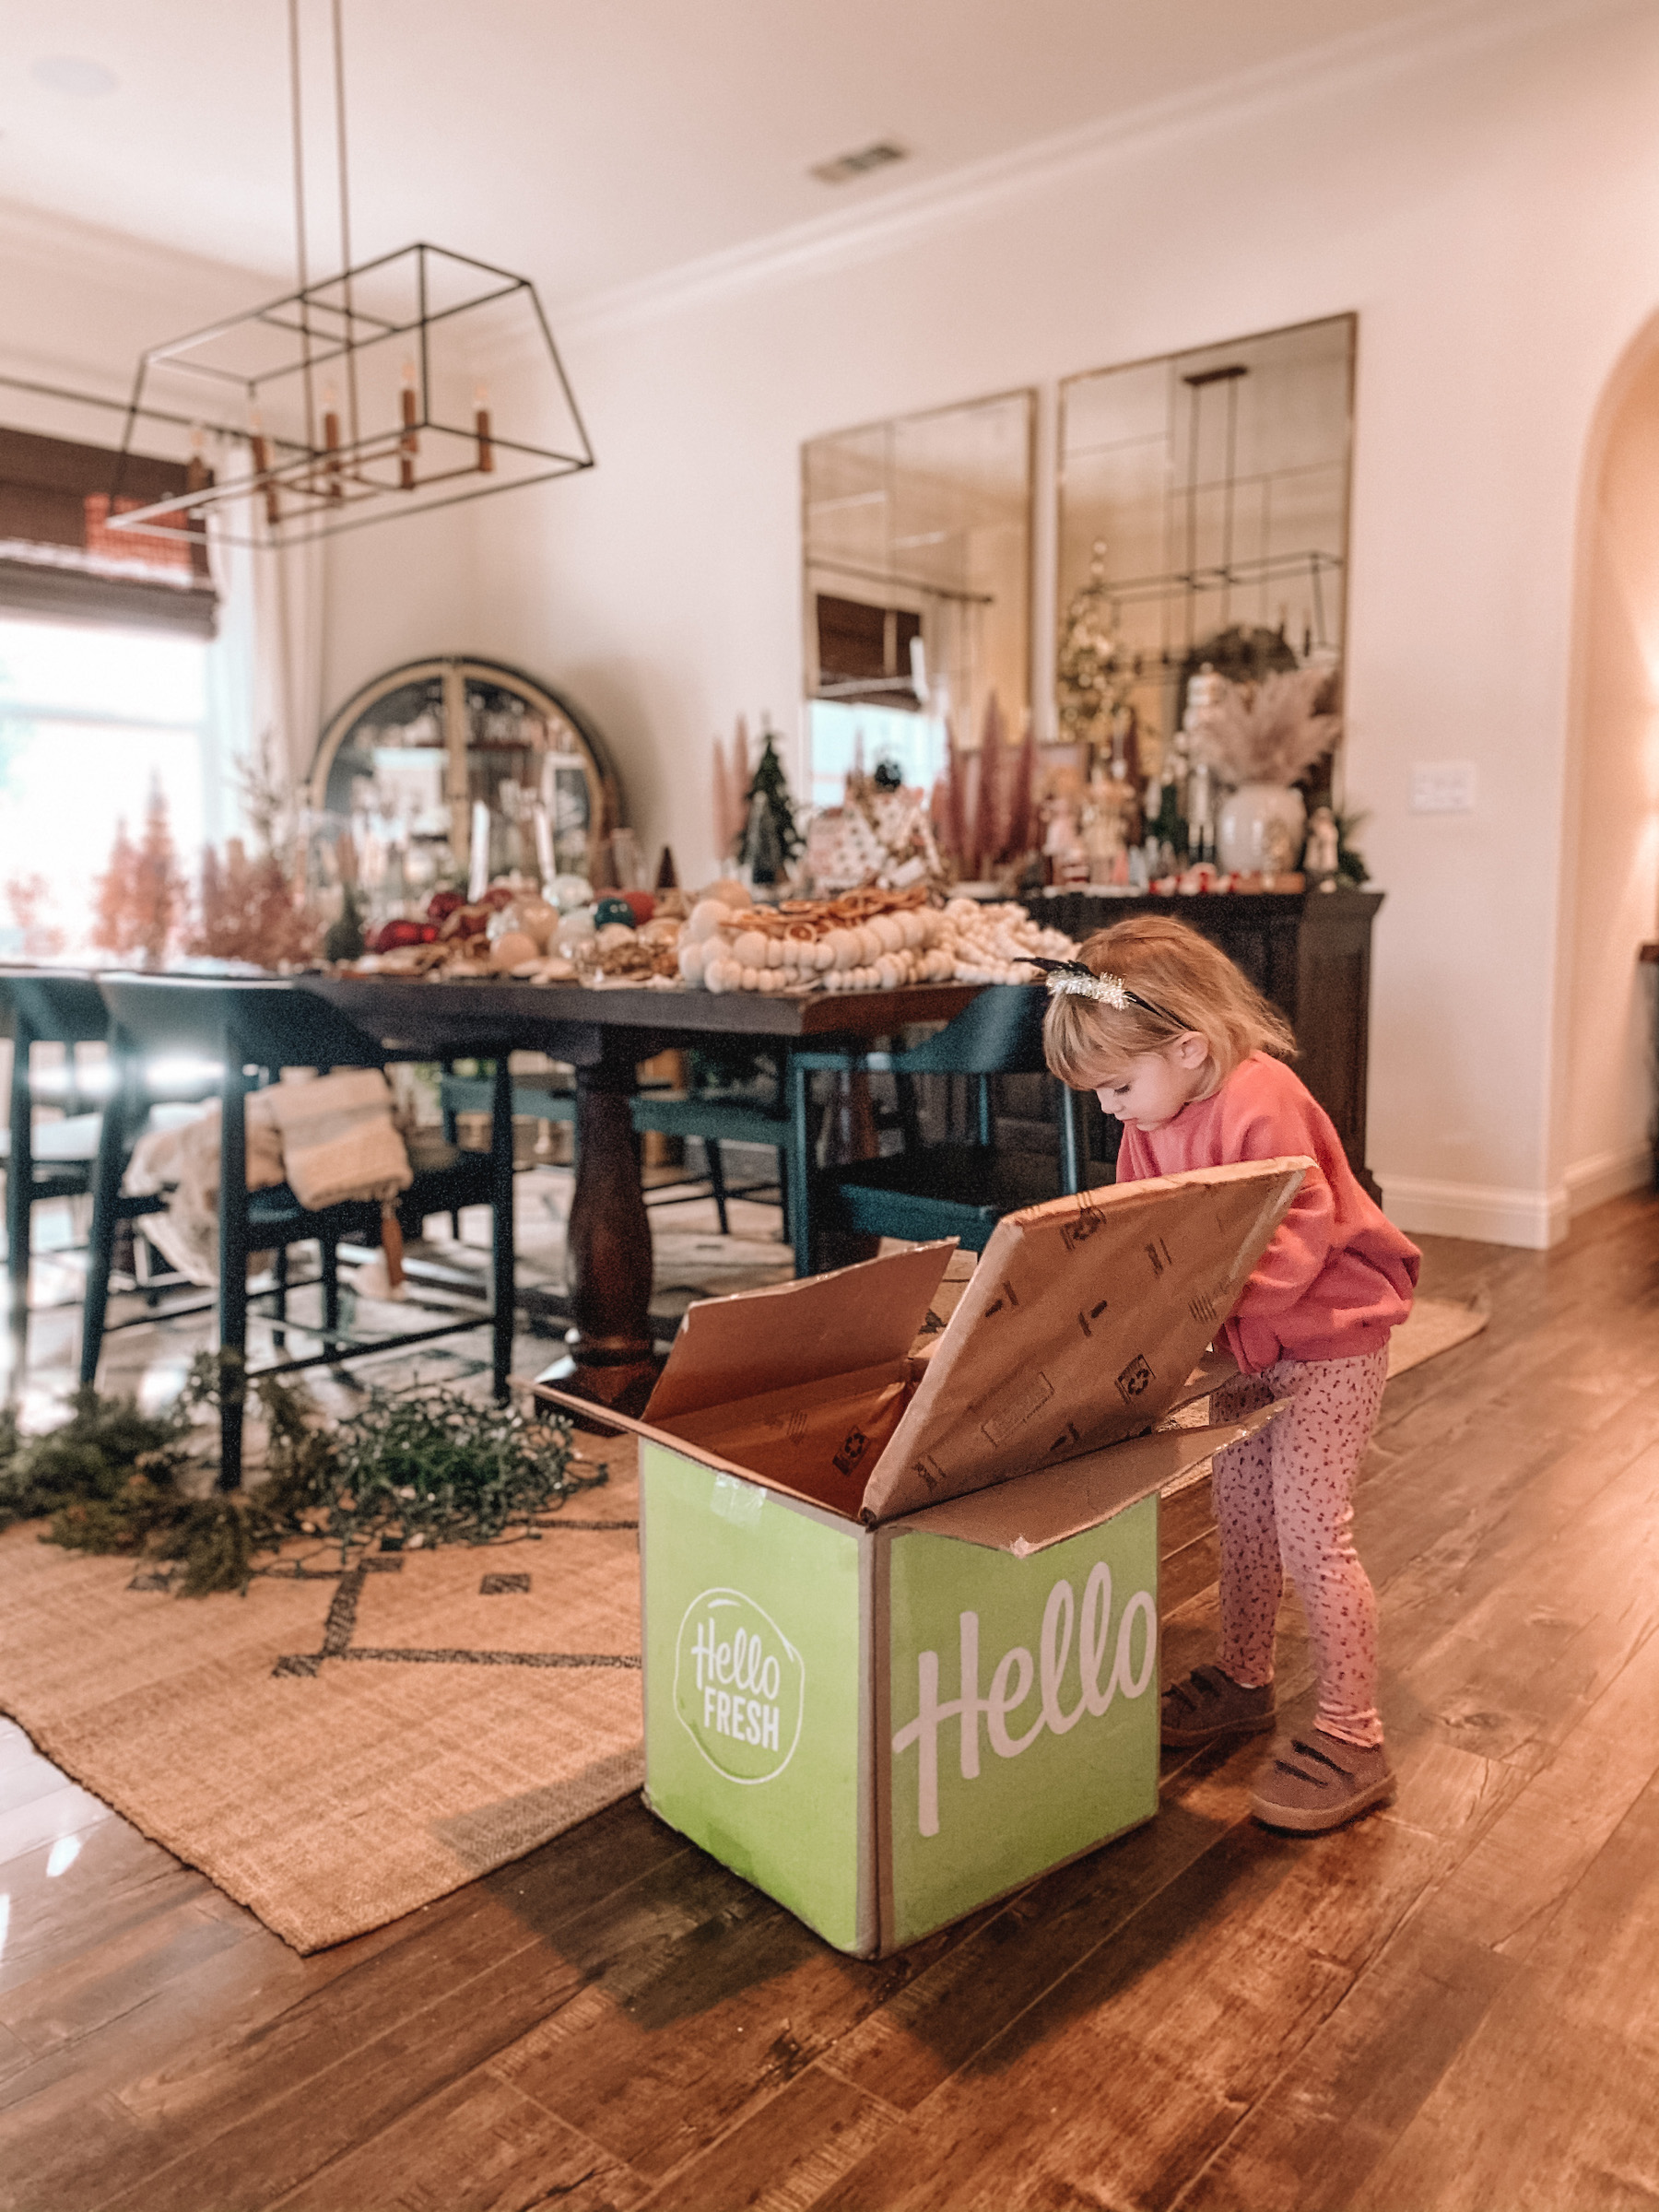 Making daily life easier in 2021 with hellofresh